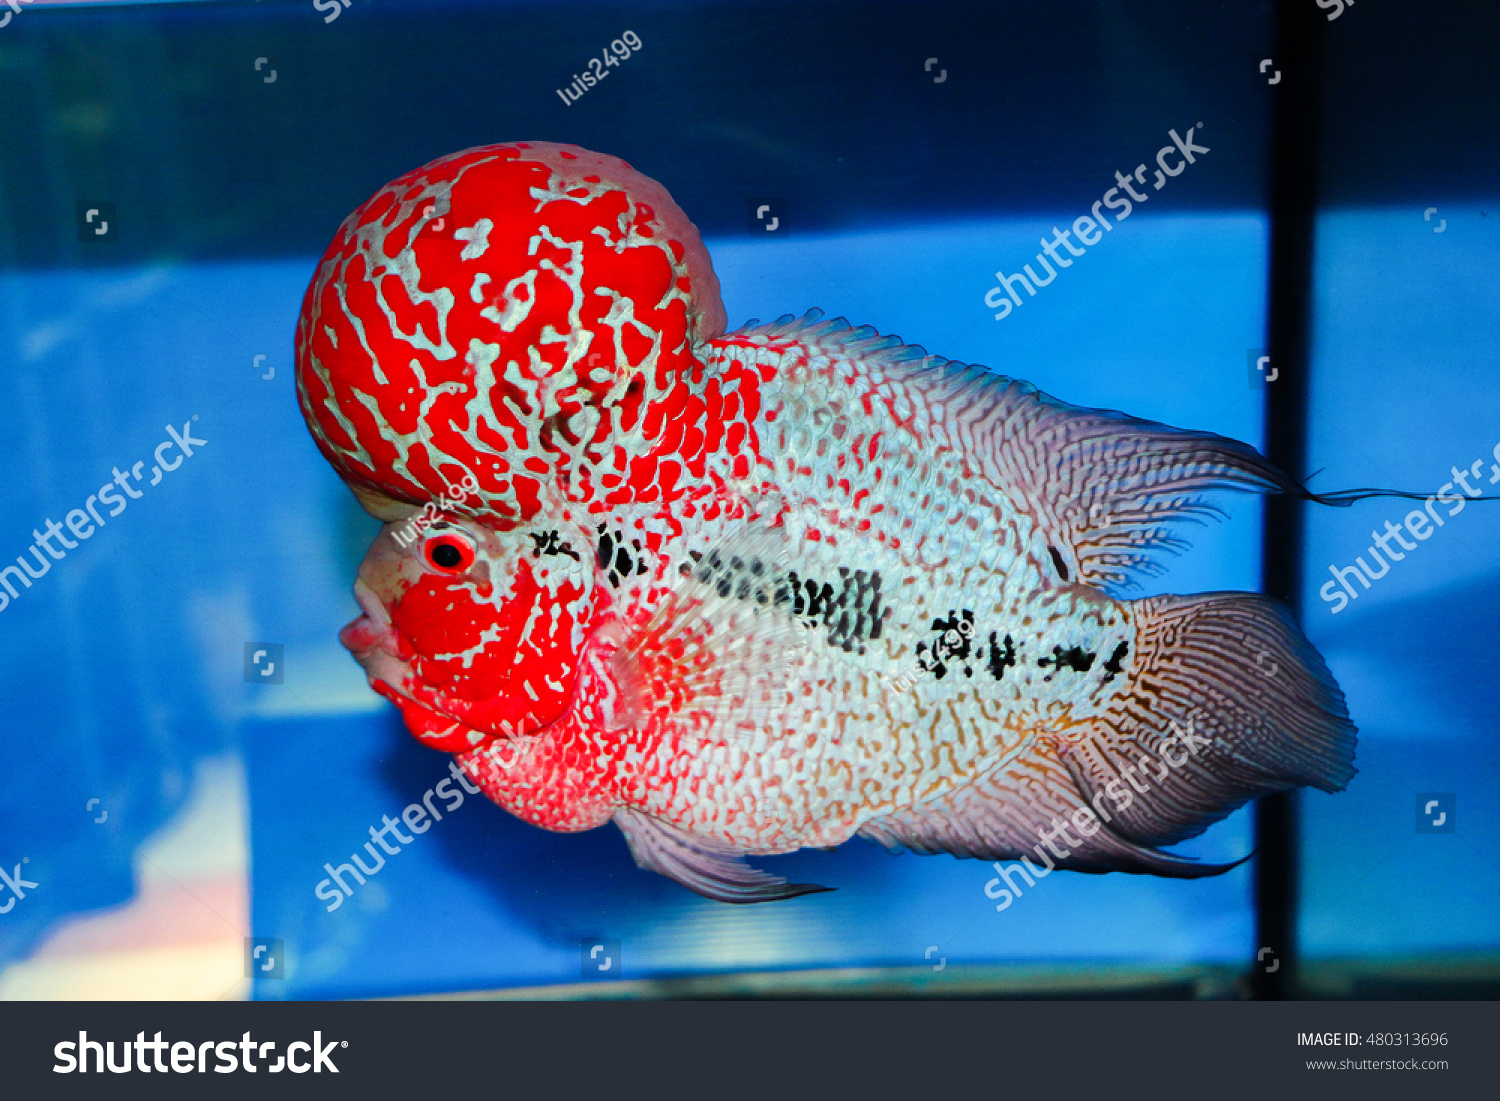 Royalty-free High Quality Flowerhorn Supper Red… #480313696 Stock ...